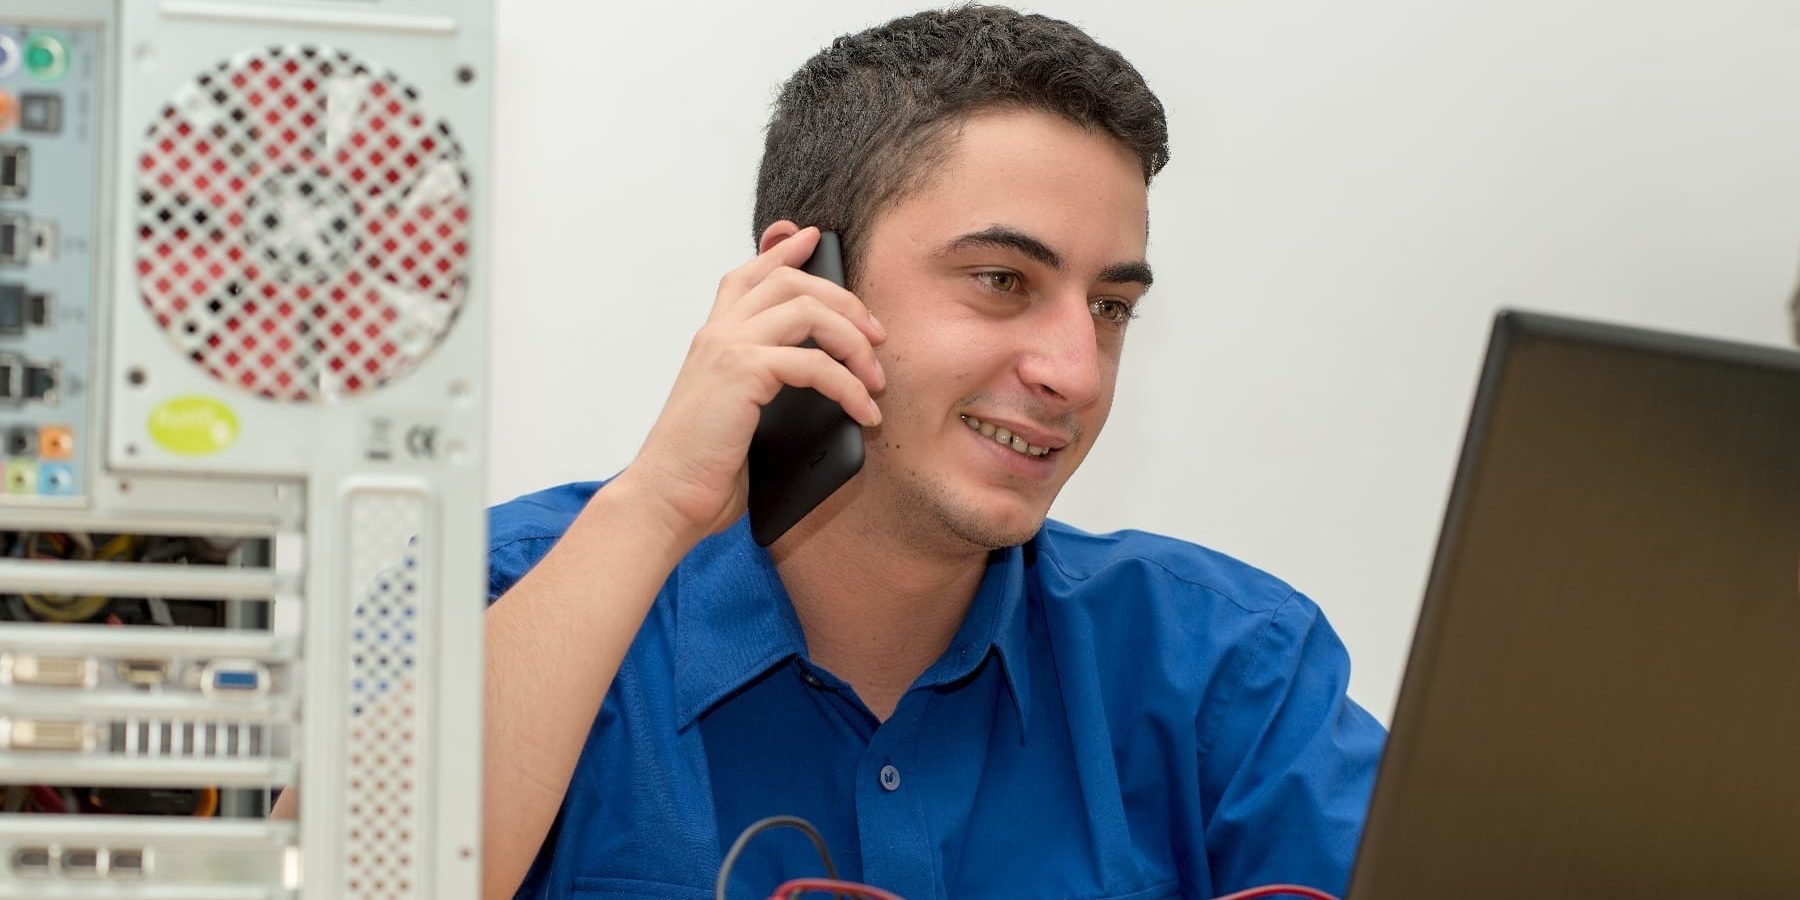 IT Support Issues Contact us Young technician working on IT Support Issues and contact IT Support Services